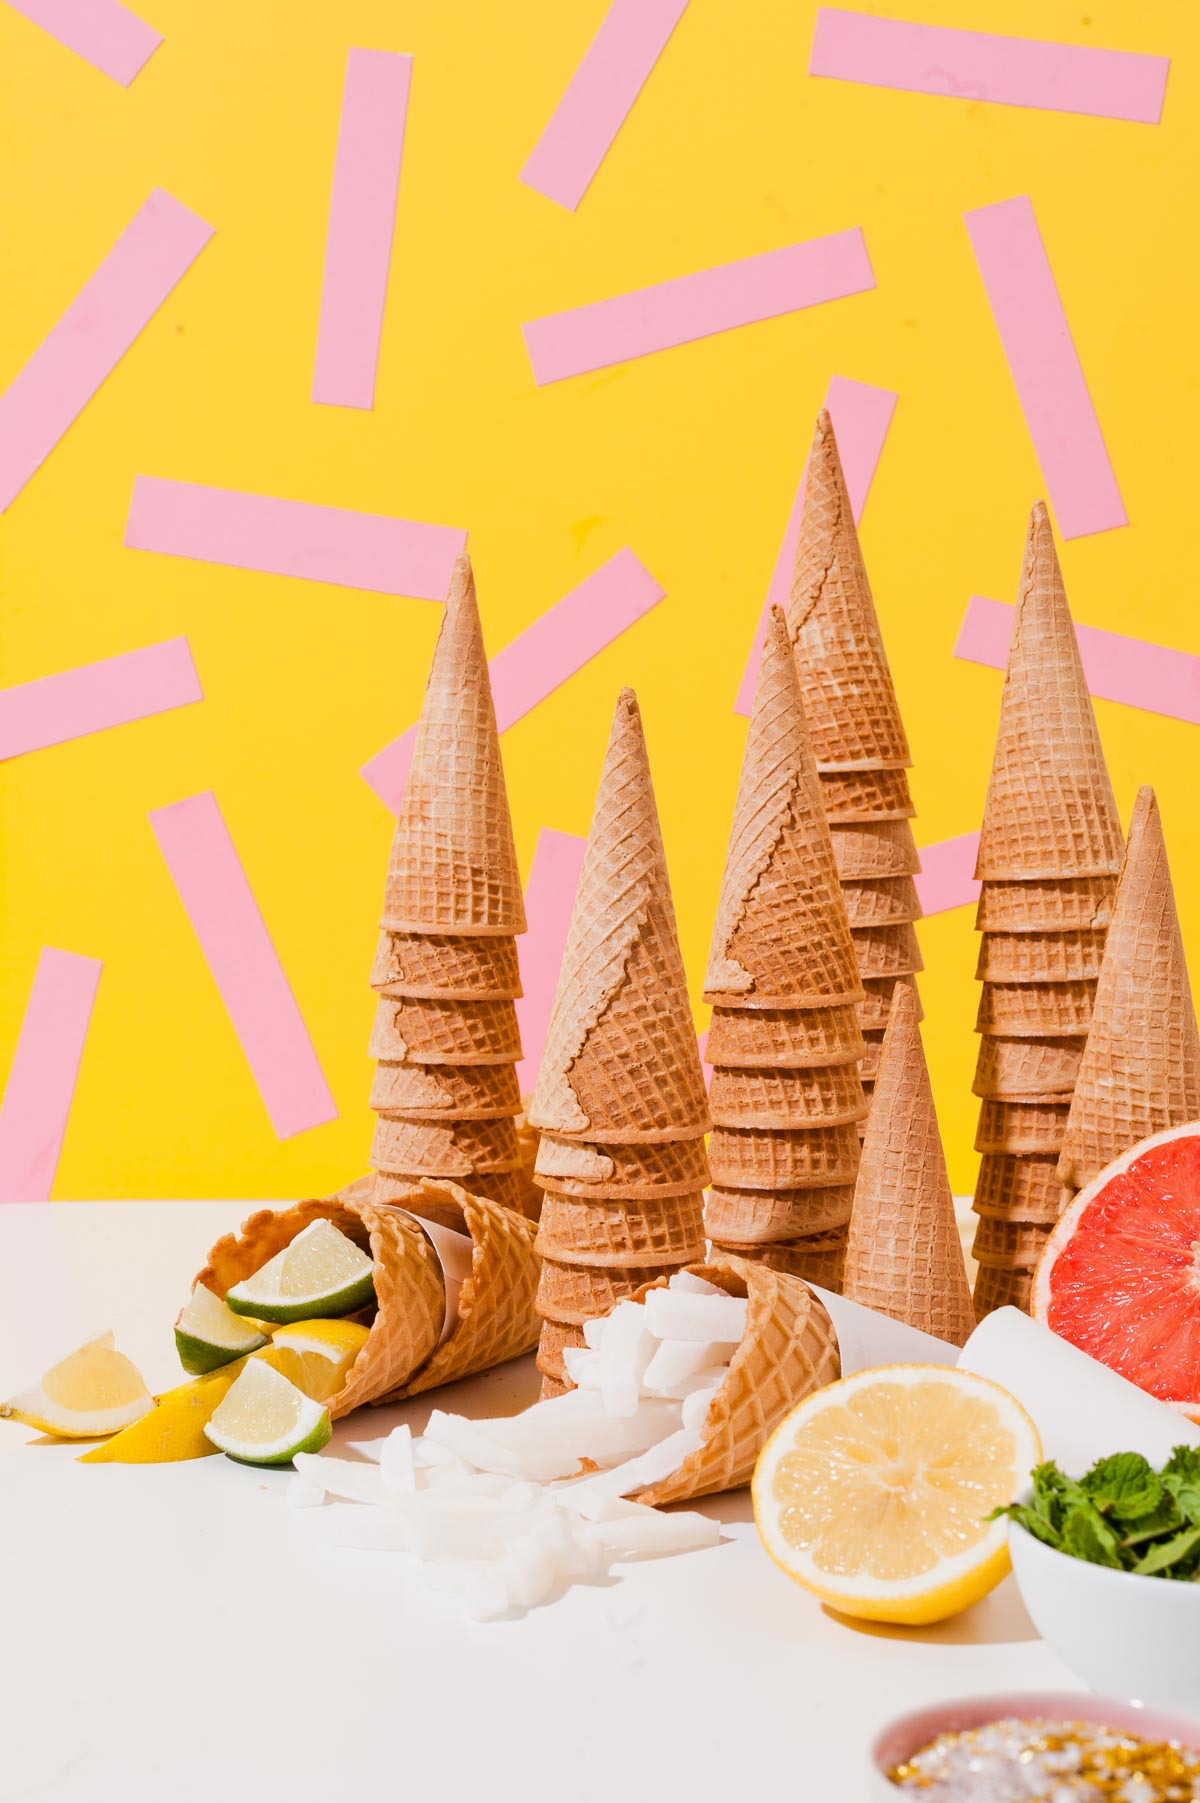 Sorbet bar styling from Paper & Stitch